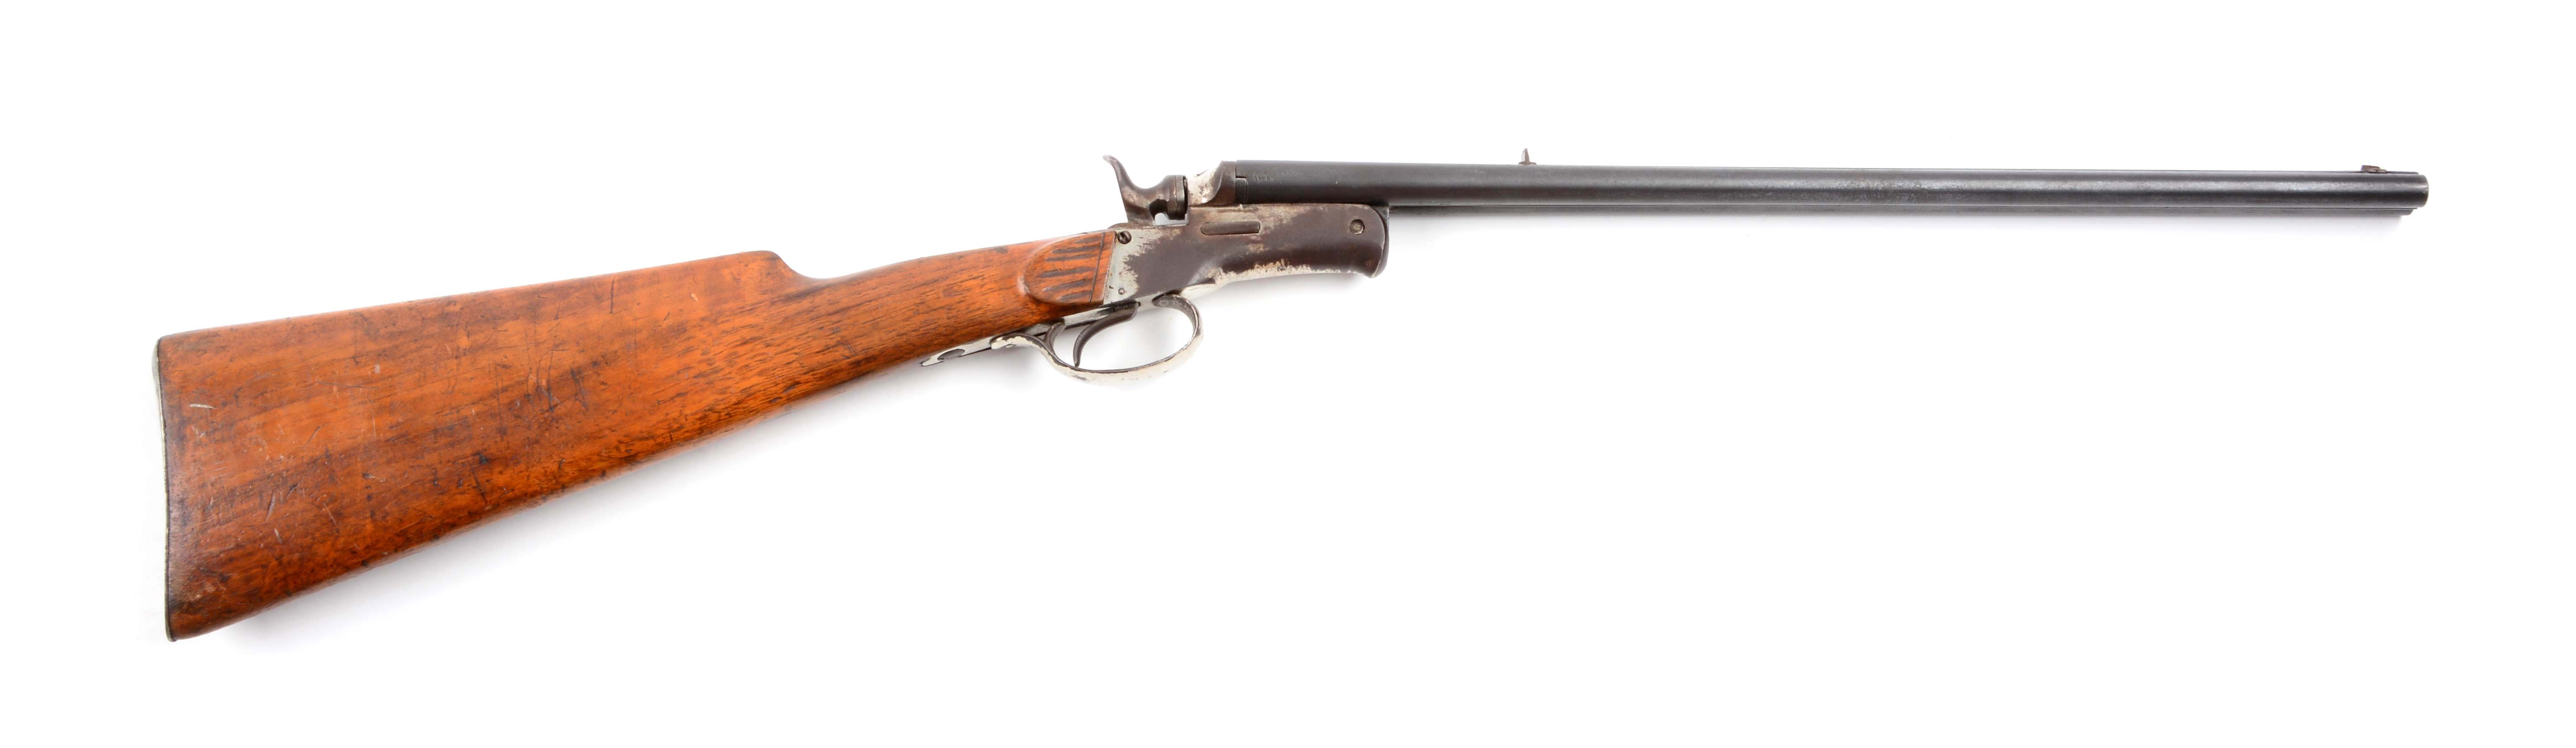 Auktion - Firearms, Militaria, Sporting & Fishing am 09 06